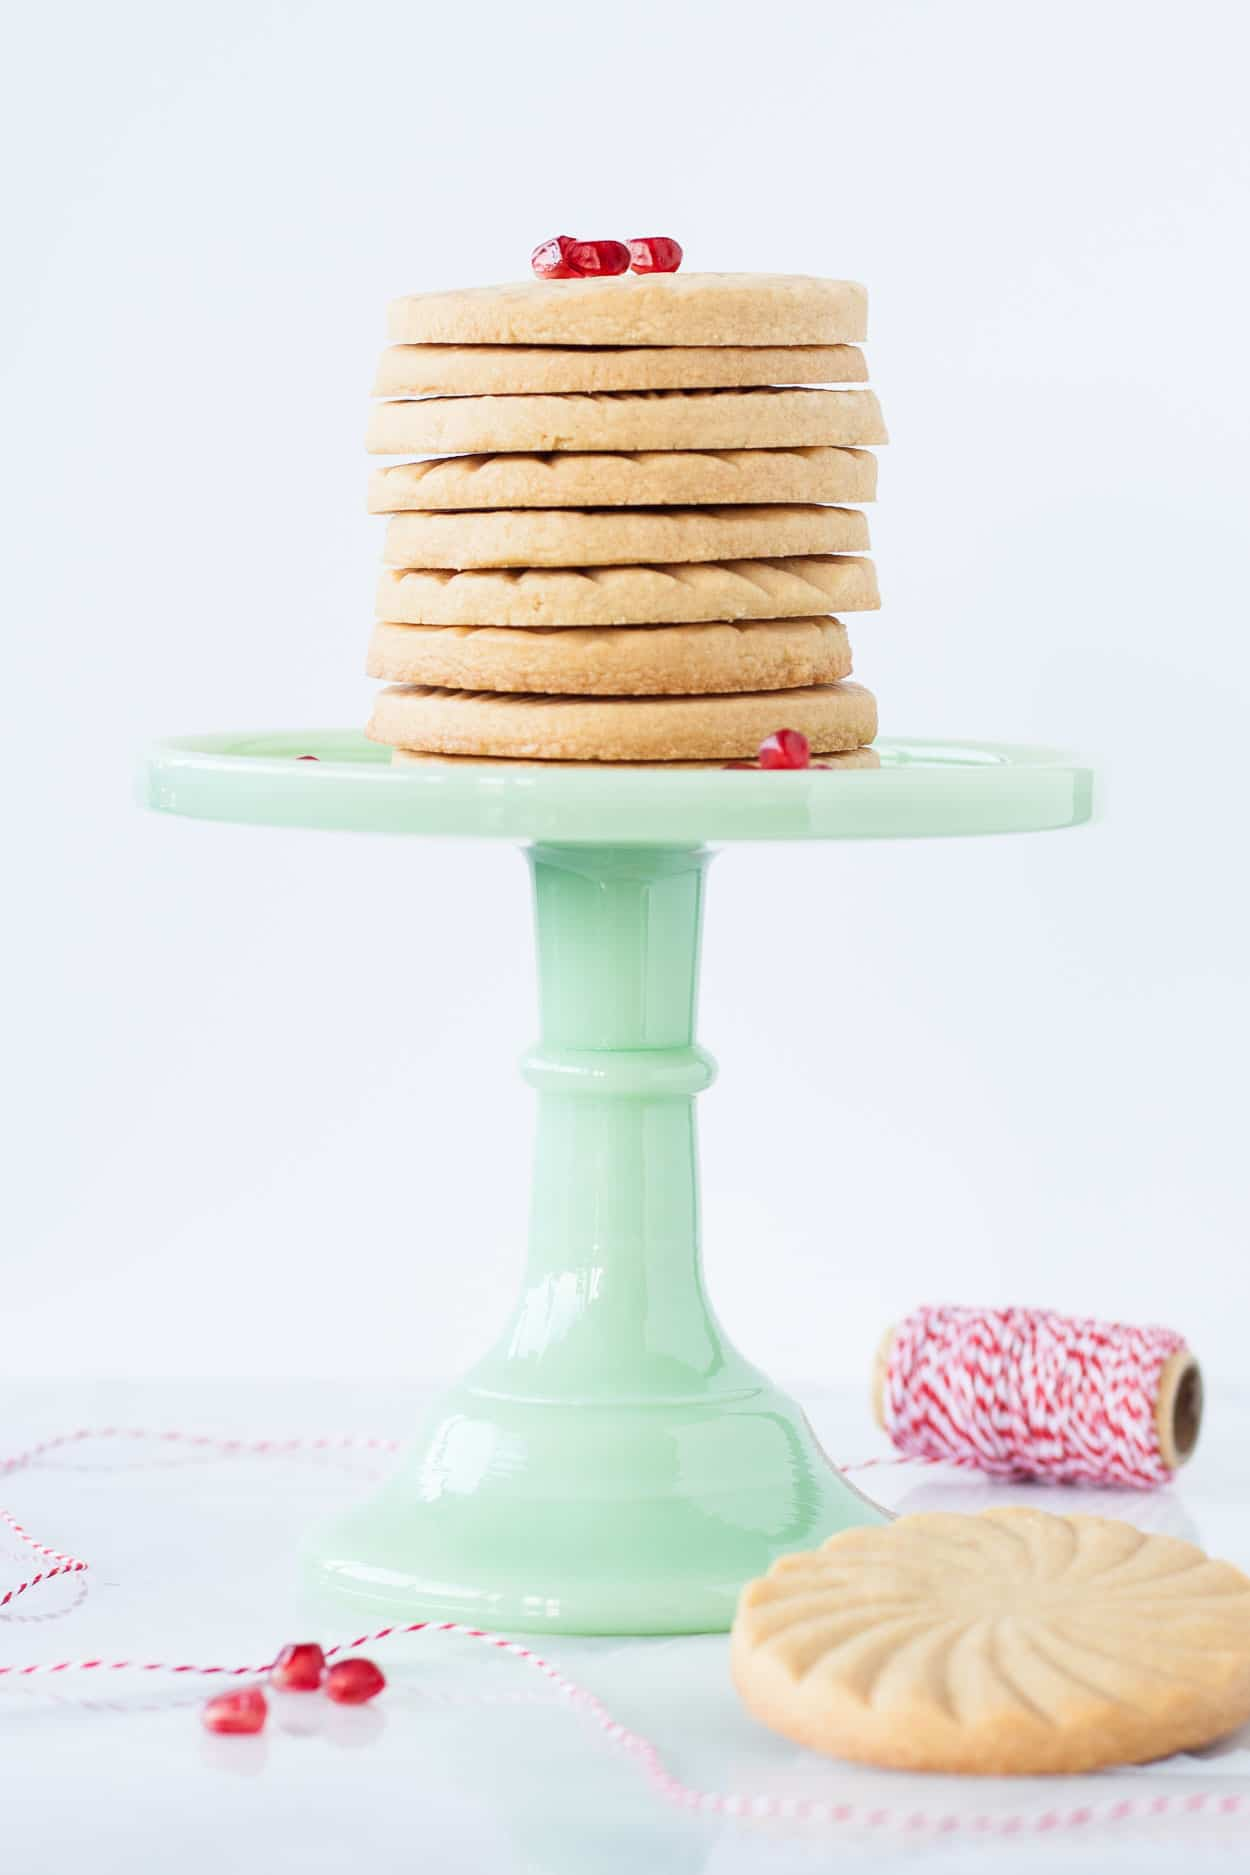 Cookies stacked on a green cake stand.